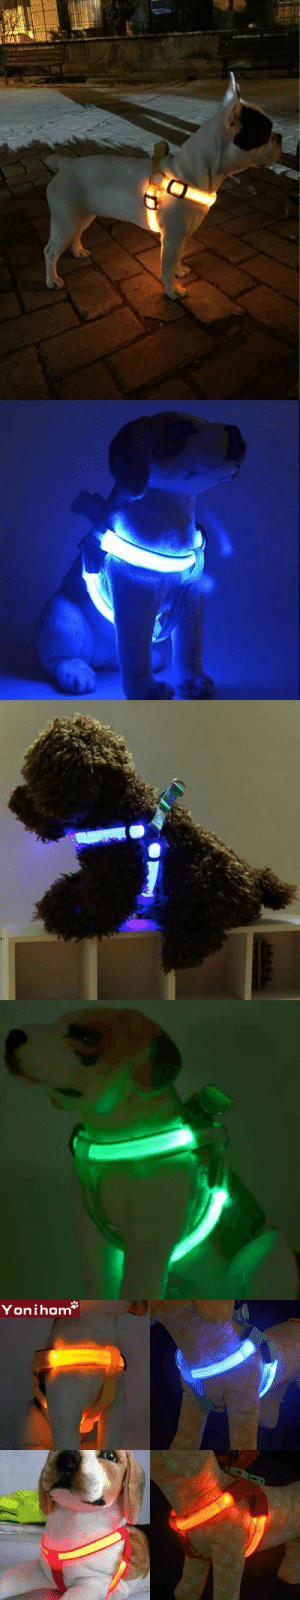 "awesomage:   The LED Harness enables you  to locate your dog at night so be easily seen from a great distance, keeping it safe from night traffic accidents. SPECIAL DISCOUNT OF 30% OFF PLUS FREE SHIPPING WITH COUPON CODE ""CUDDLING"" For every sale made, a rescue dog is fed!   https://www.doggiemon.com/products/led-harness : A1KAMAGLAR RELERVS  BILIRALLAN JOI   Yonihom  E3  X1  EX awesomage:   The LED Harness enables you  to locate your dog at night so be easily seen from a great distance, keeping it safe from night traffic accidents. SPECIAL DISCOUNT OF 30% OFF PLUS FREE SHIPPING WITH COUPON CODE ""CUDDLING"" For every sale made, a rescue dog is fed!   https://www.doggiemon.com/products/led-harness"